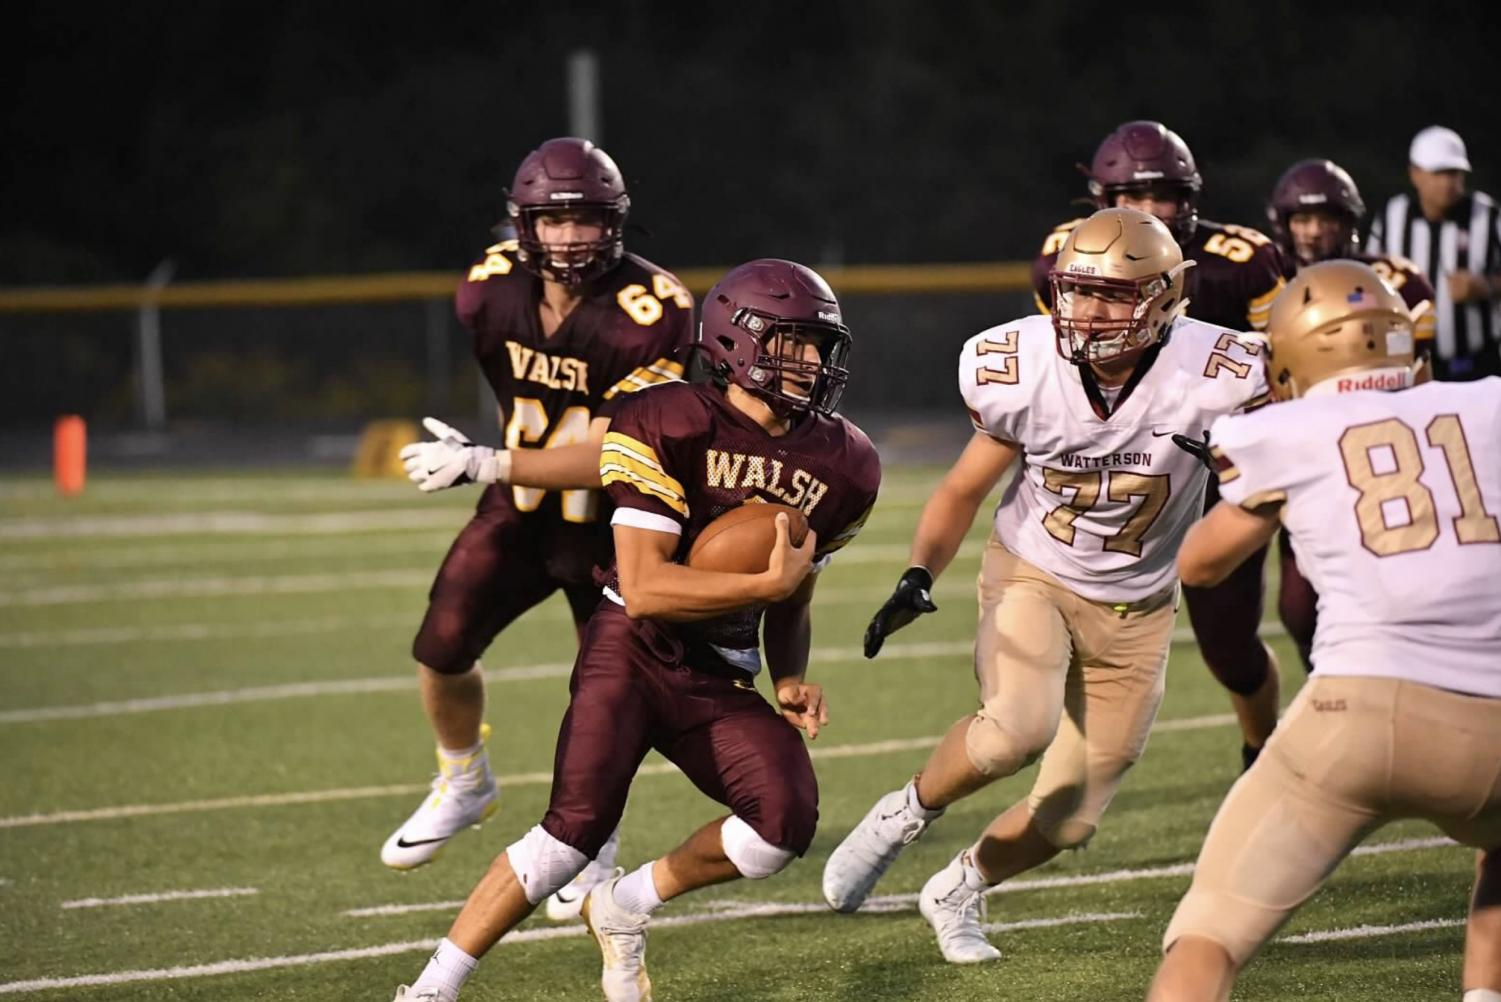 Senior quarterback Cam Mayes runs the ball for the Warriors against Bishop Watterson.